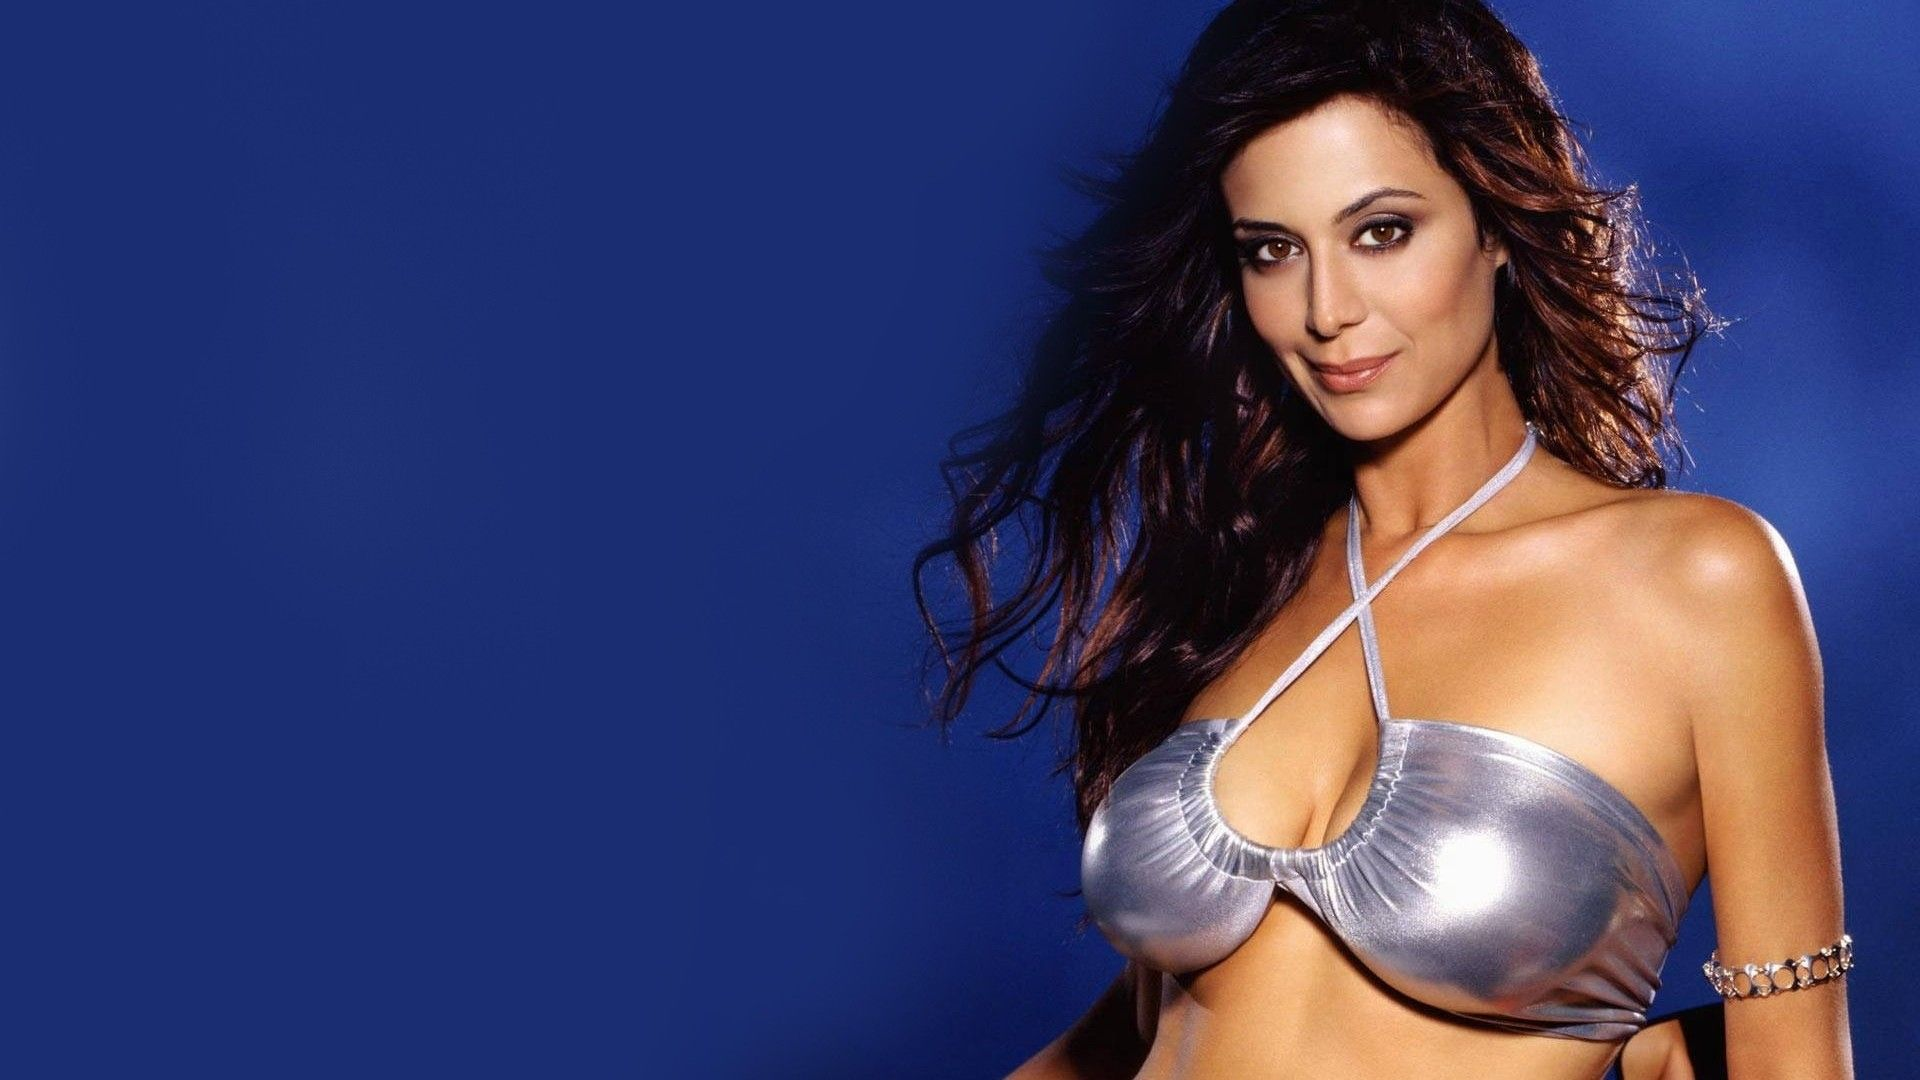 1920x1080 - Catherine Bell Wallpapers 28